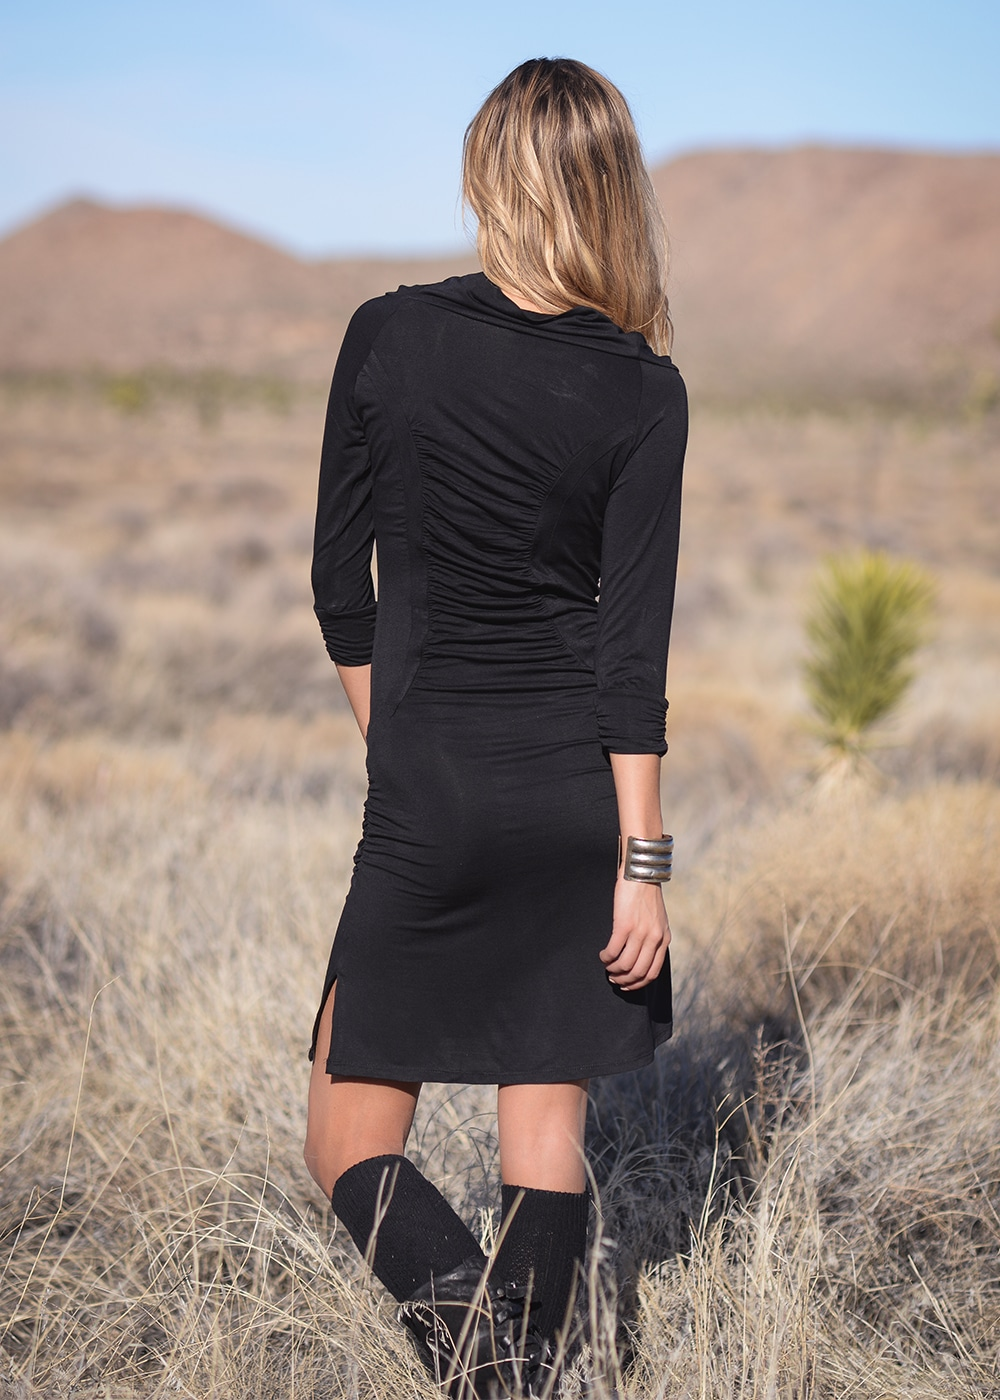 Hemp Darling Dress in Black by Nomads Hemp Wear Back